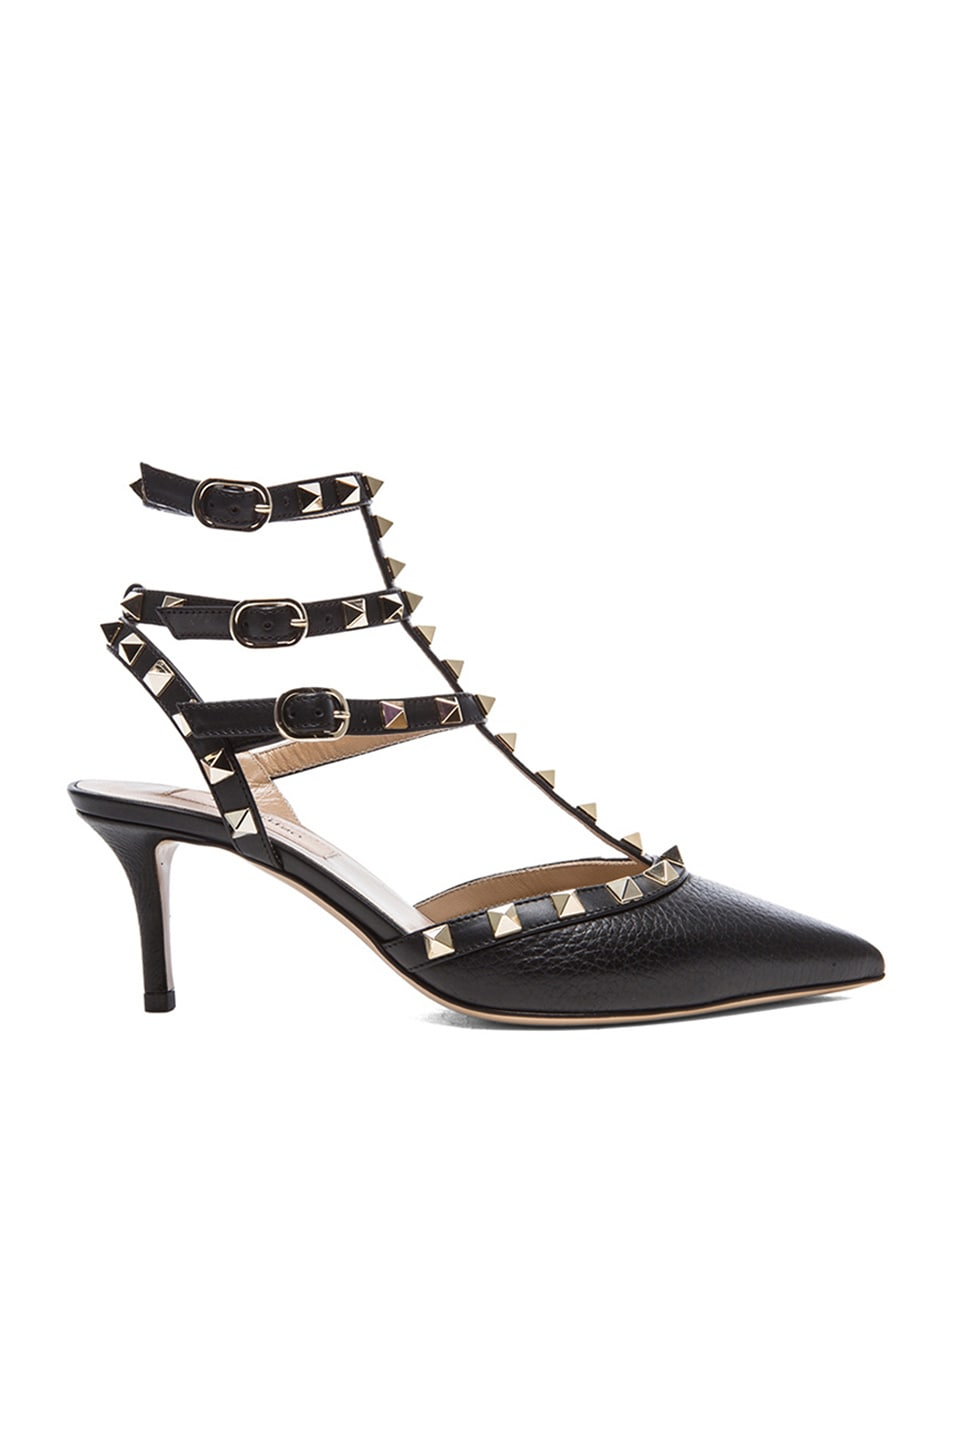 Image 1 of Valentino Rockstud Grained Leather Slingbacks T.65 in Black